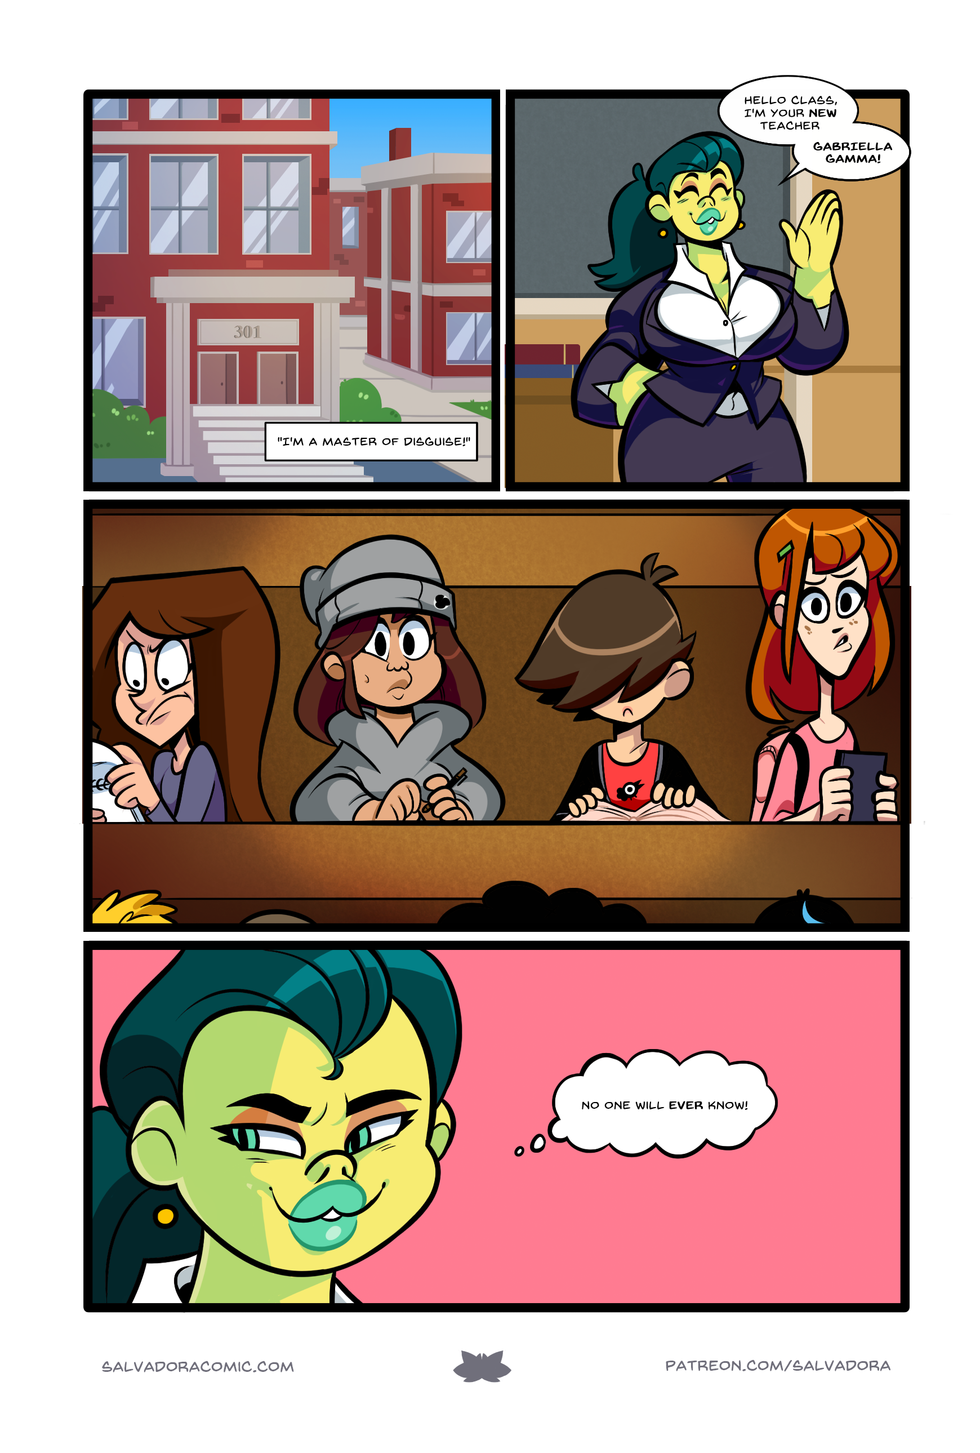 Would Gamma Cutie wear her hair in a ponytail? Of course not!